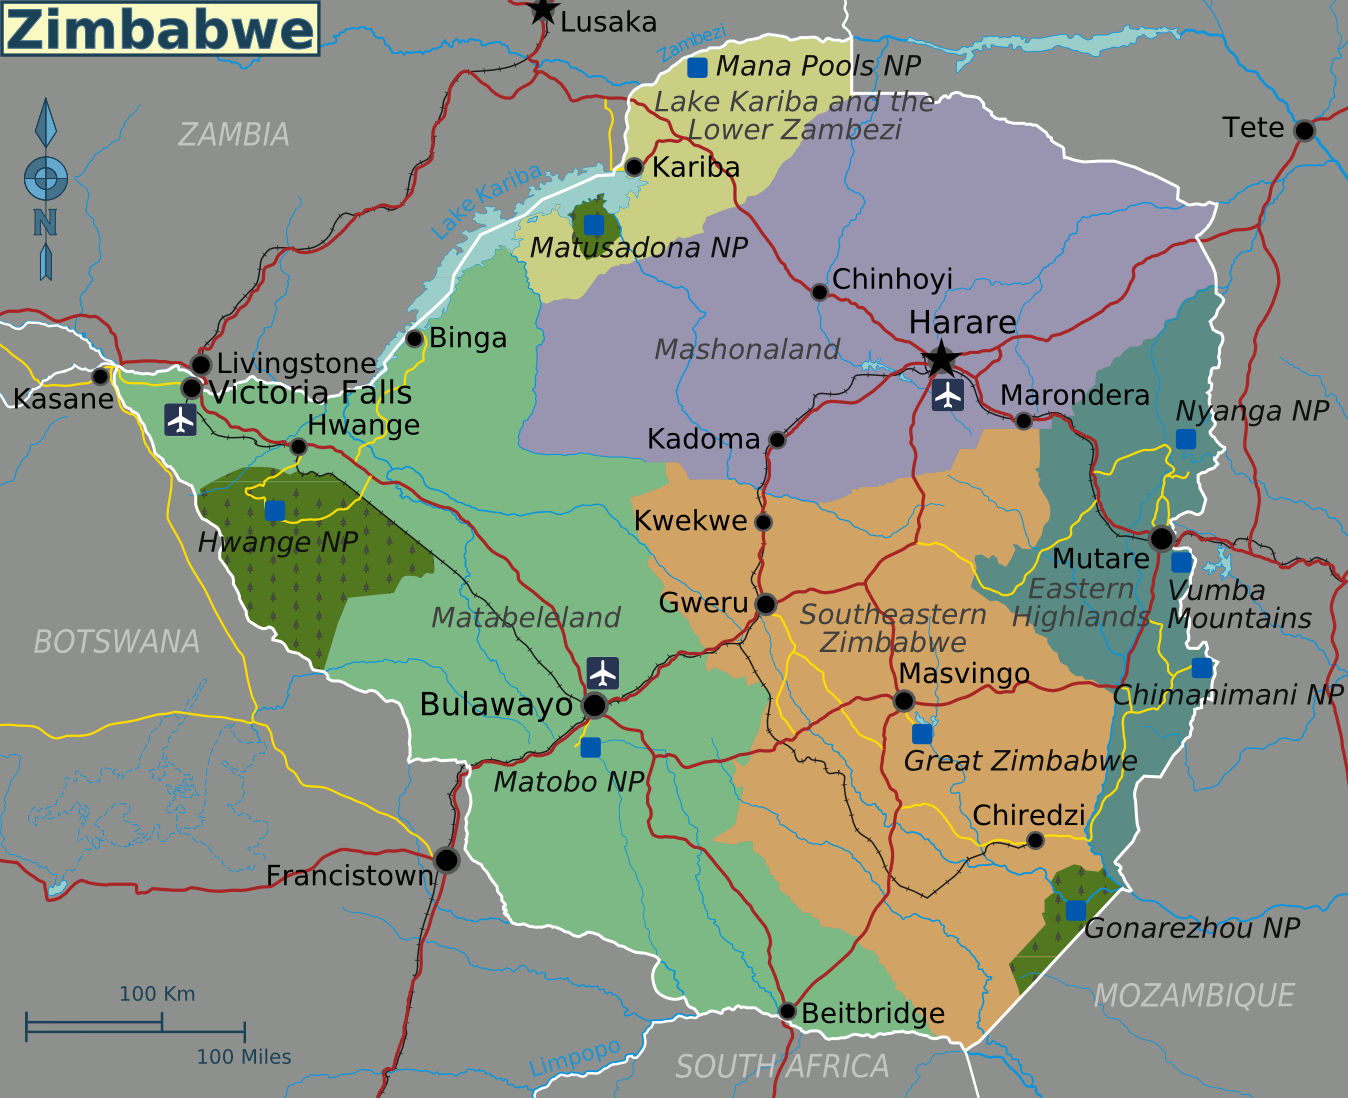 Zimbabwe_regions_map_v2.png